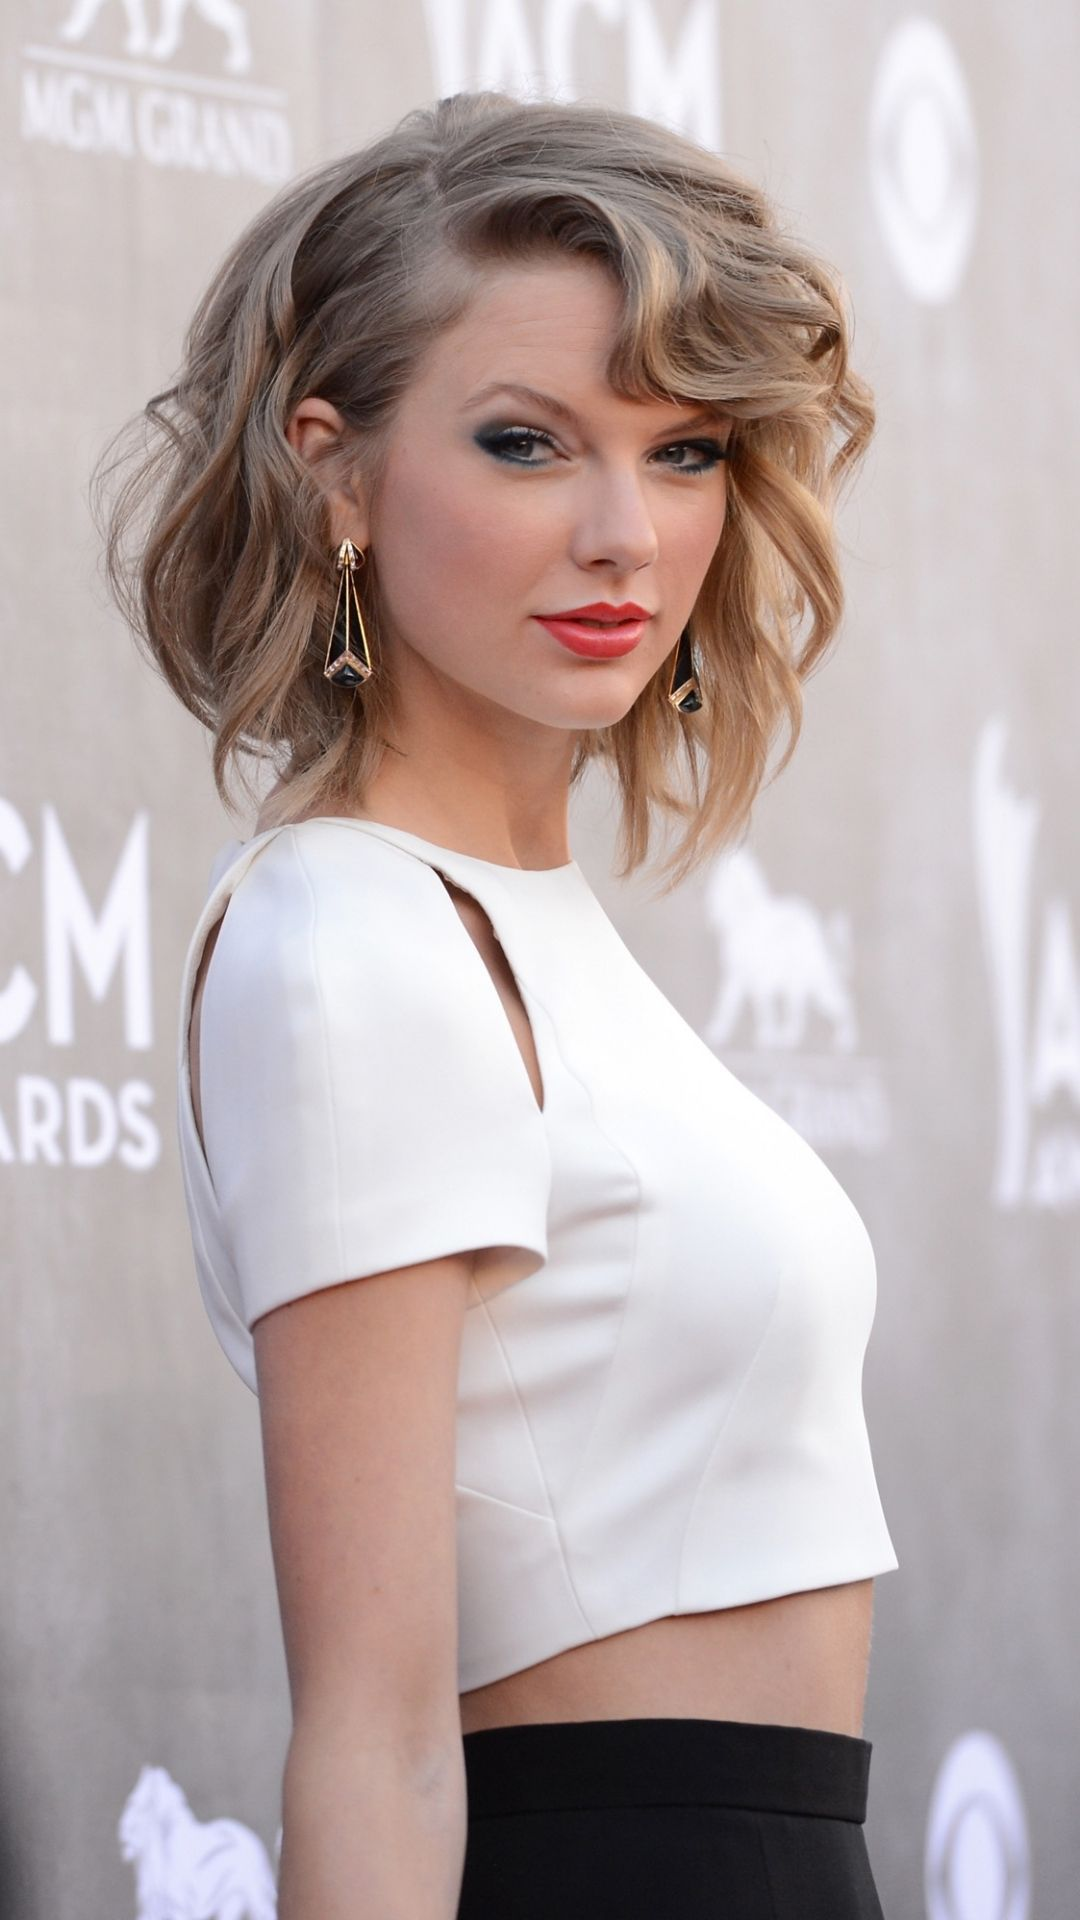 Beautiful Taylor Swift Wallpaper Android In 2020 Taylor Swift Short Hair Taylor Swift Hair Taylor Swift Wallpaper